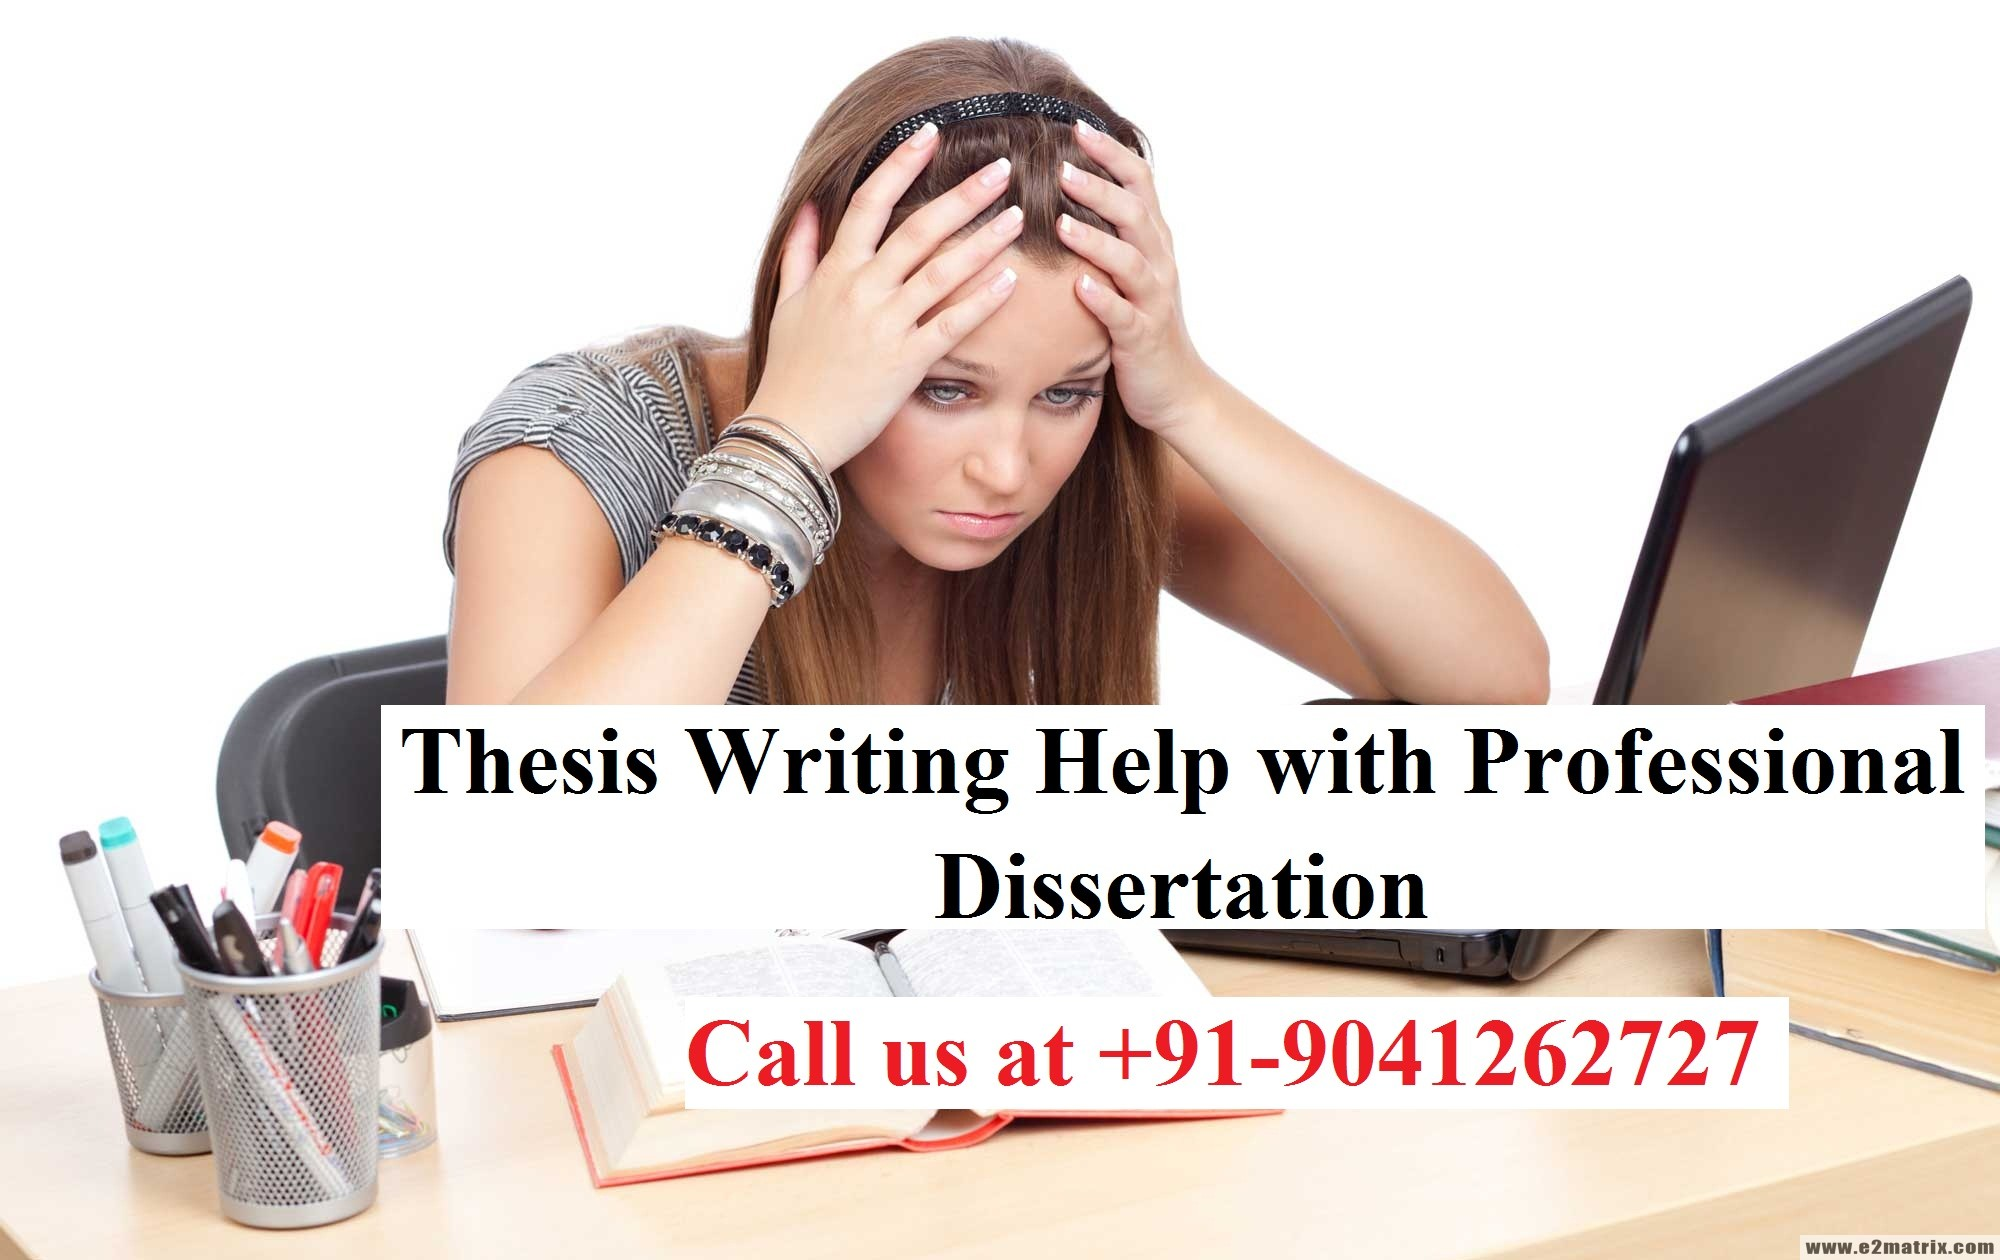 Thesis Writing Help with Professional Dissertation